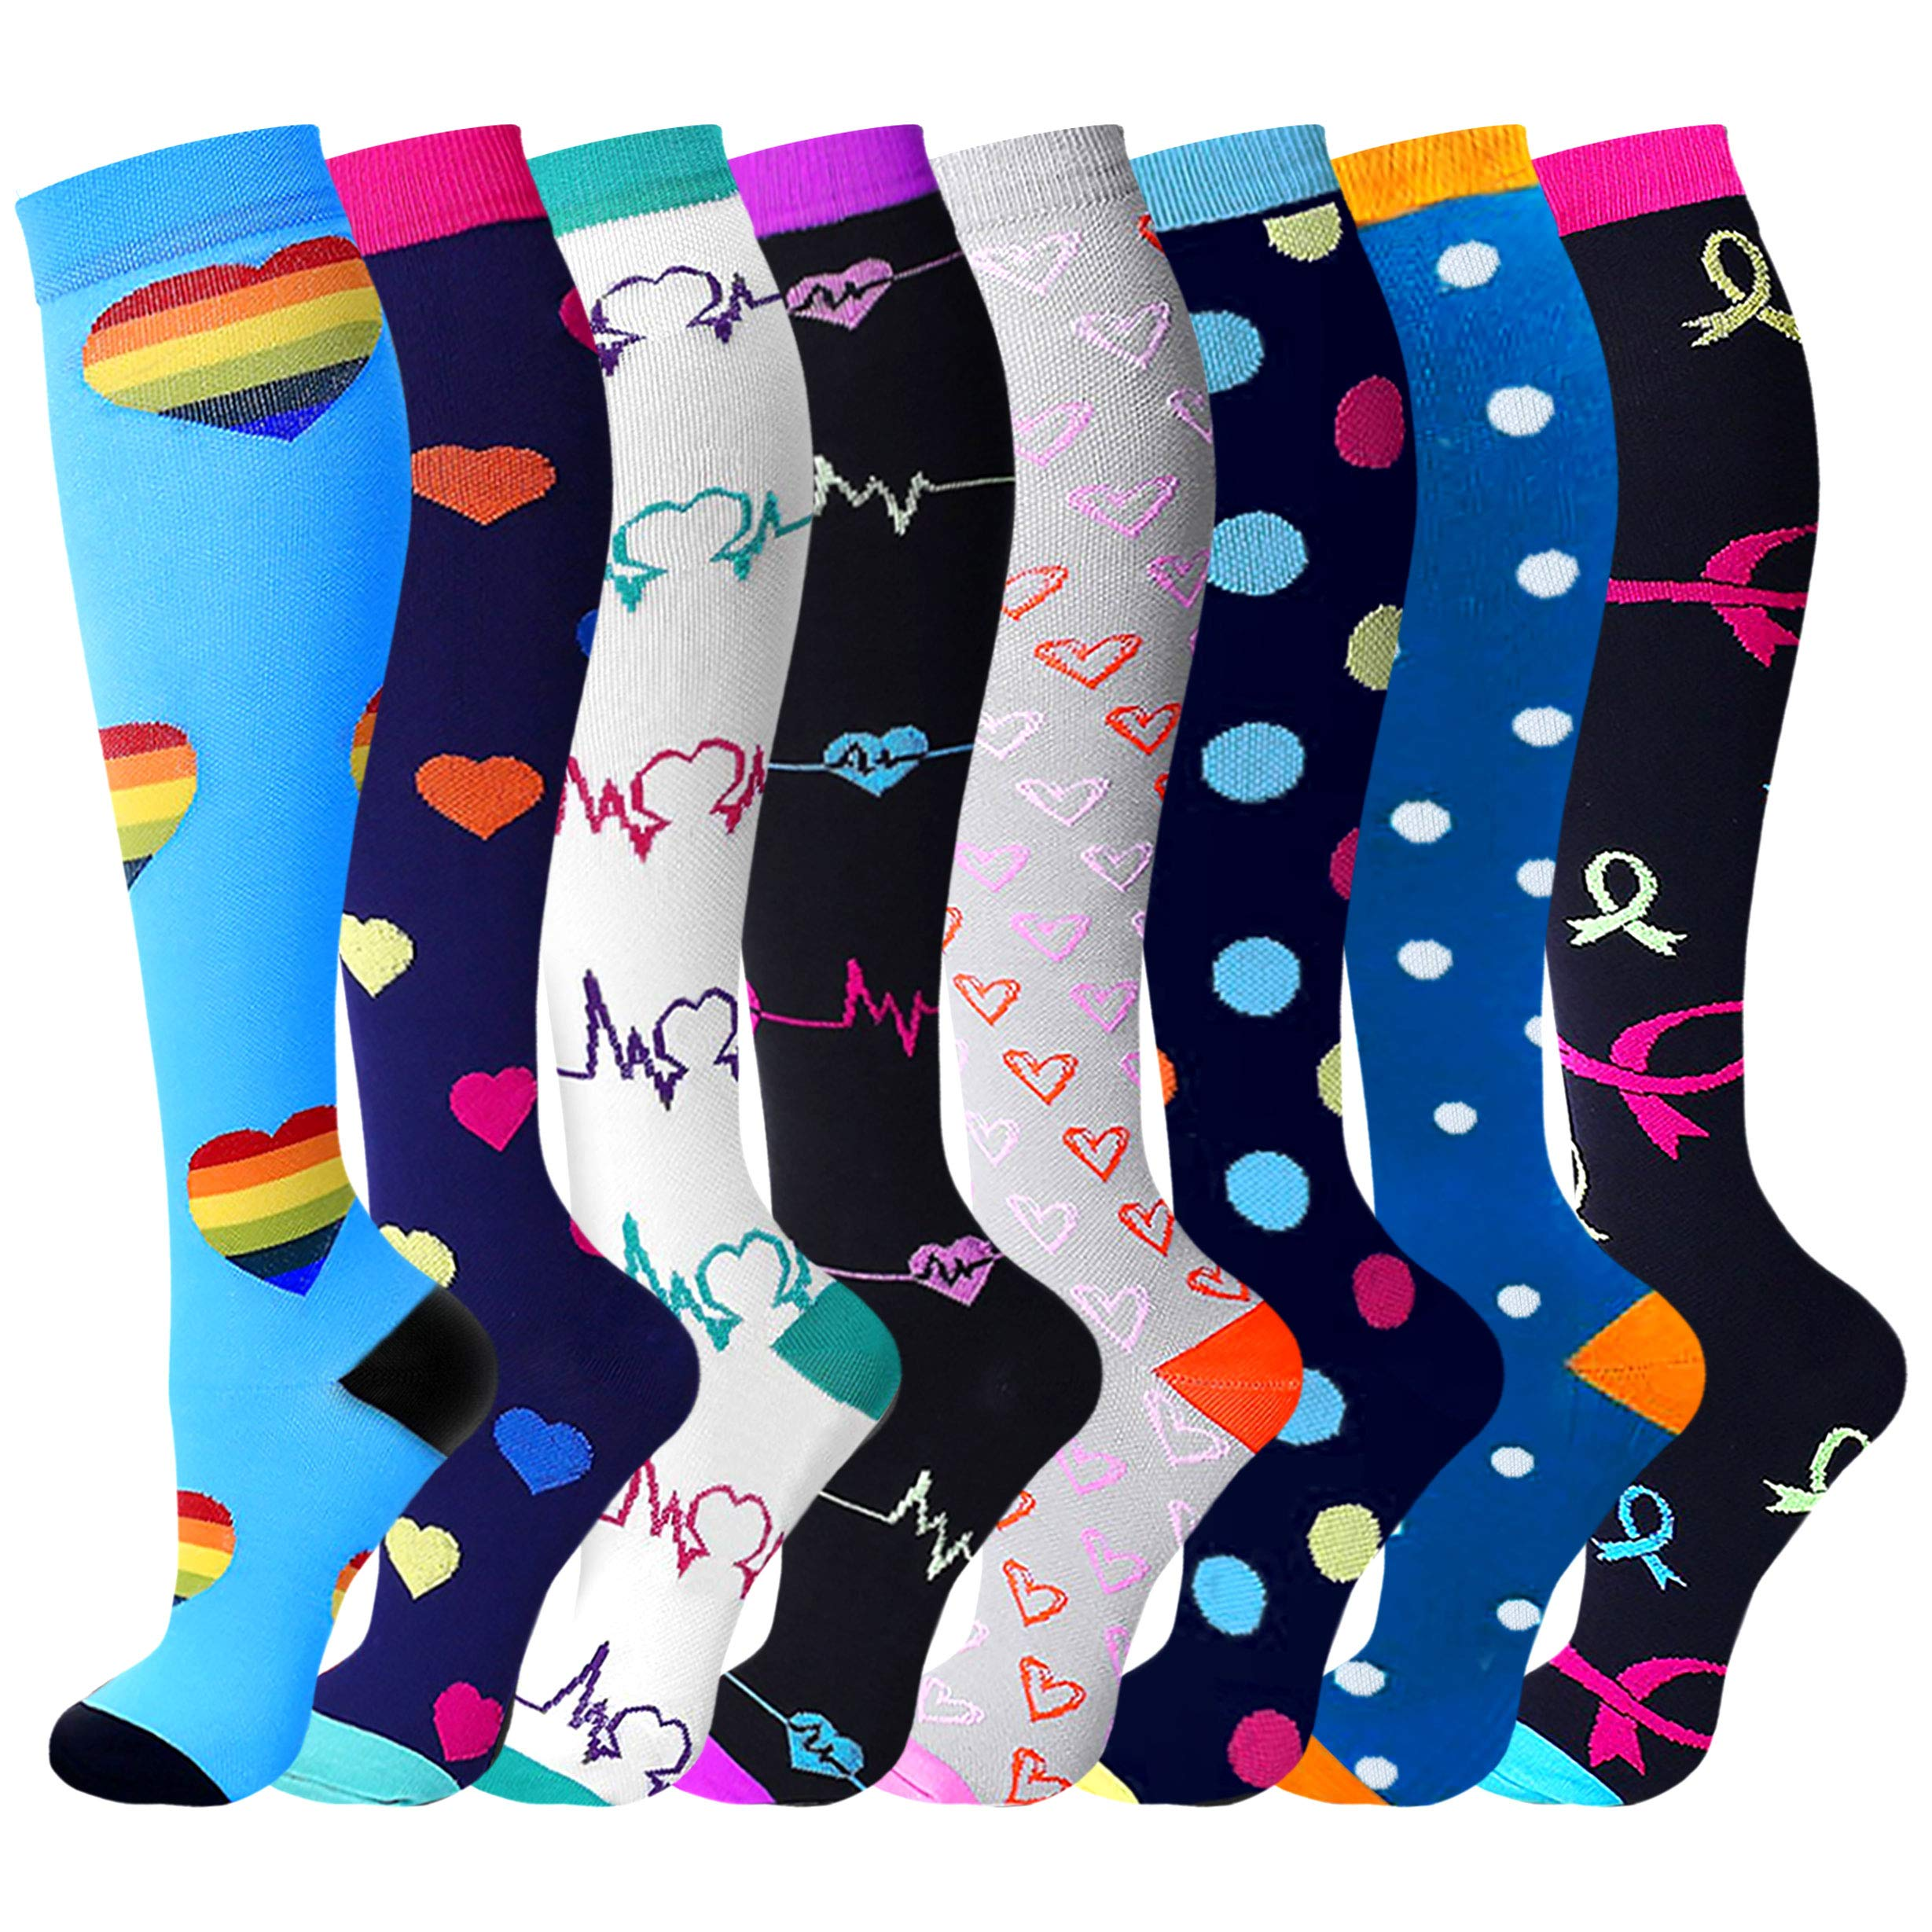 Compression Socks (8 Pairs), 15-20 mmHg is Best Athletic & Medical for Men & Women, Running, Flight, Travel, Nurses, Pregnant - Boost Performance, Blood Circulation & Recovery by WithYou